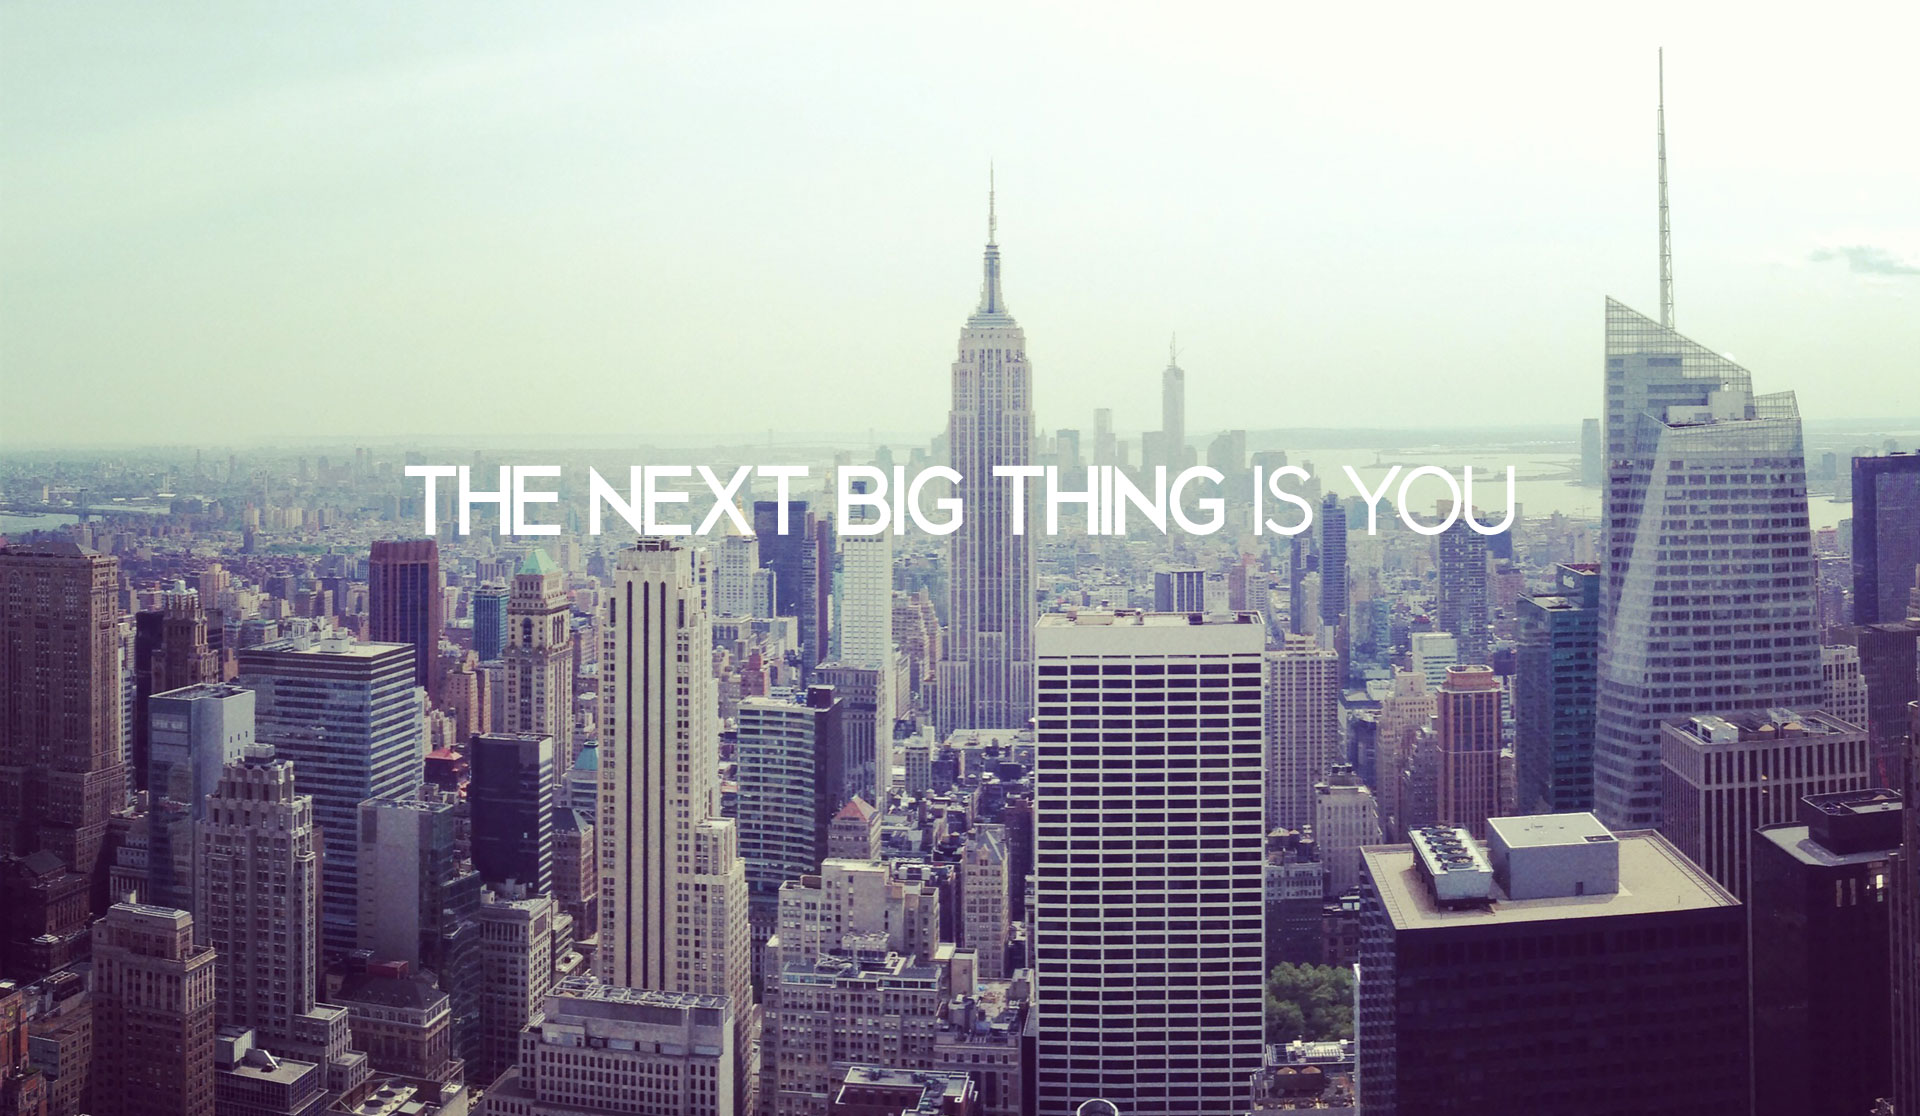 The next big thing is you